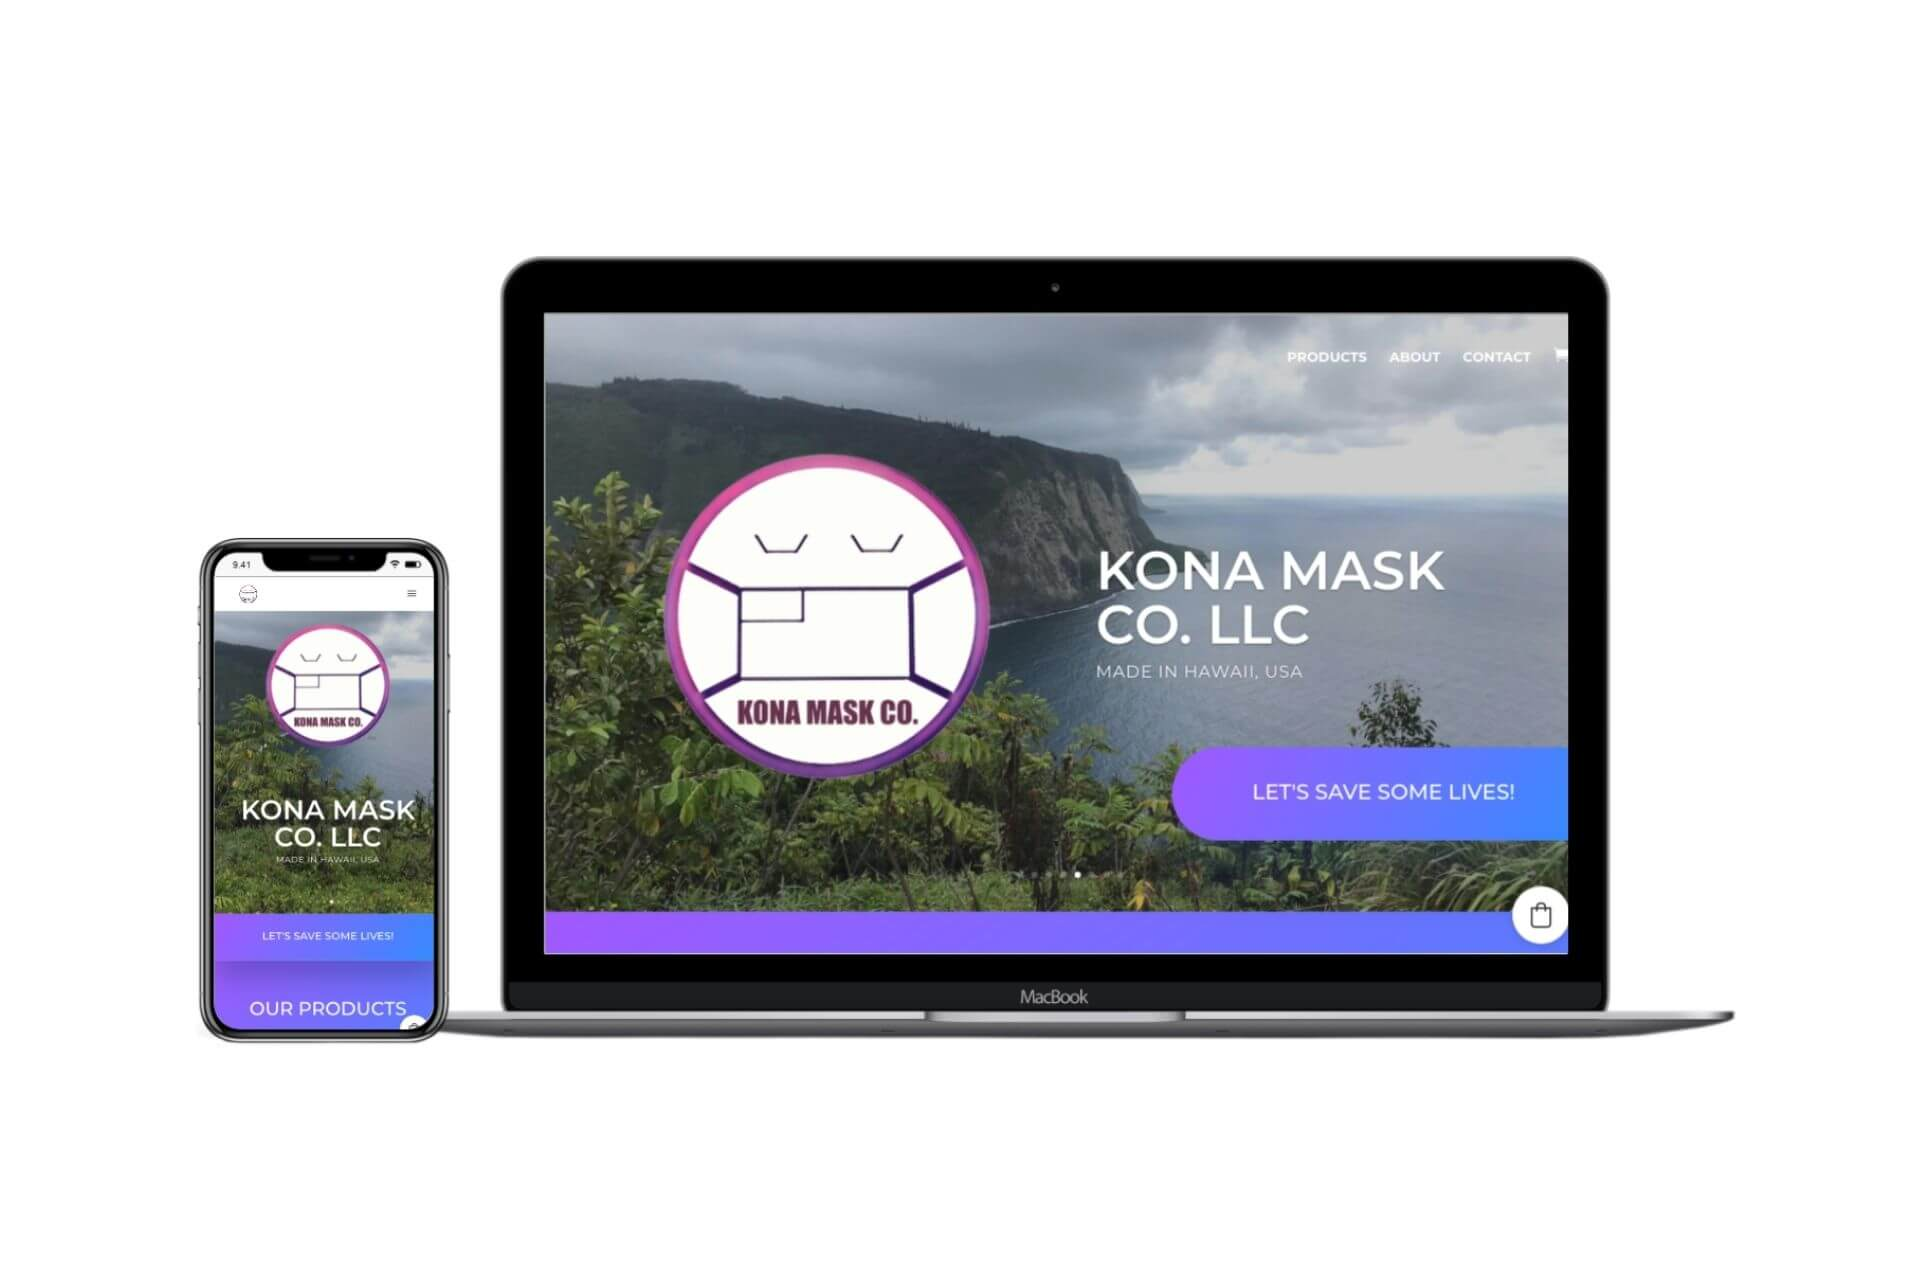 Image of the website of Kona Mask Co. in a phone screen and laptop screen.